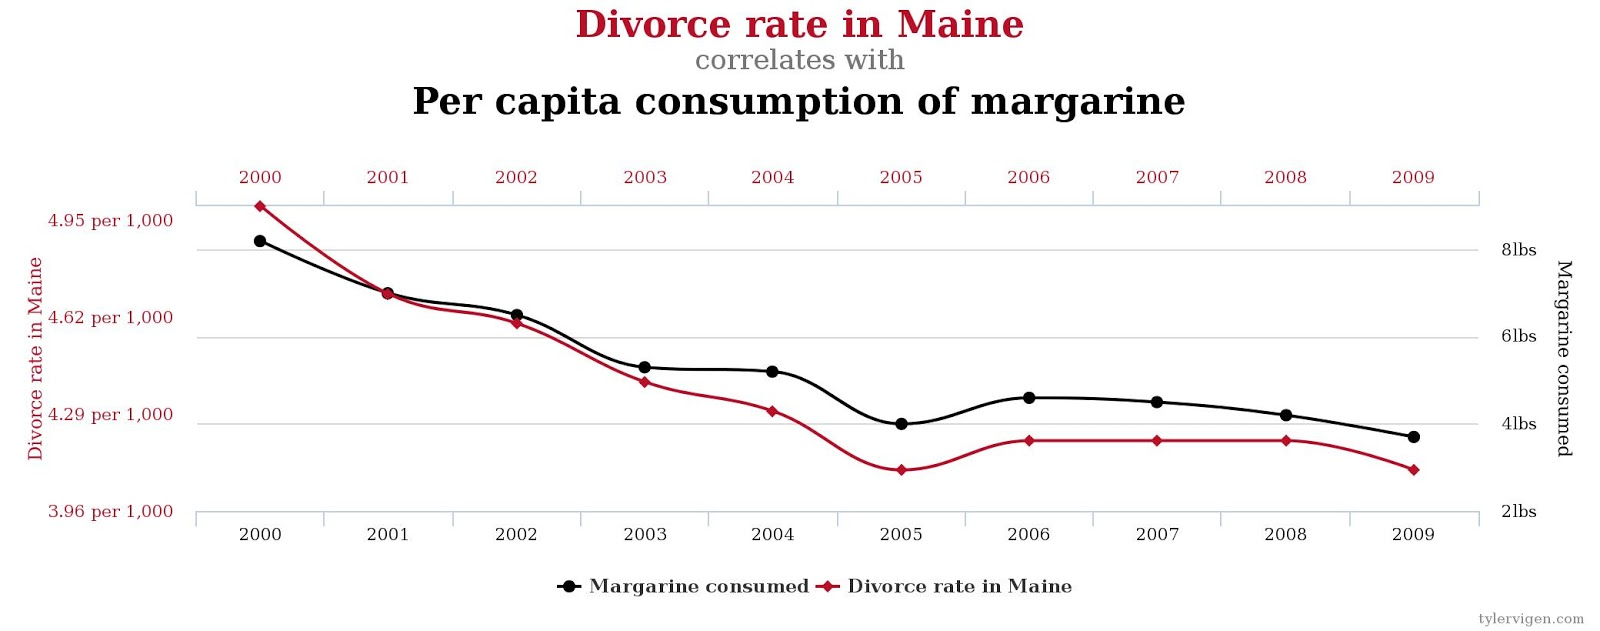 Divorce caused by Margarine consumption